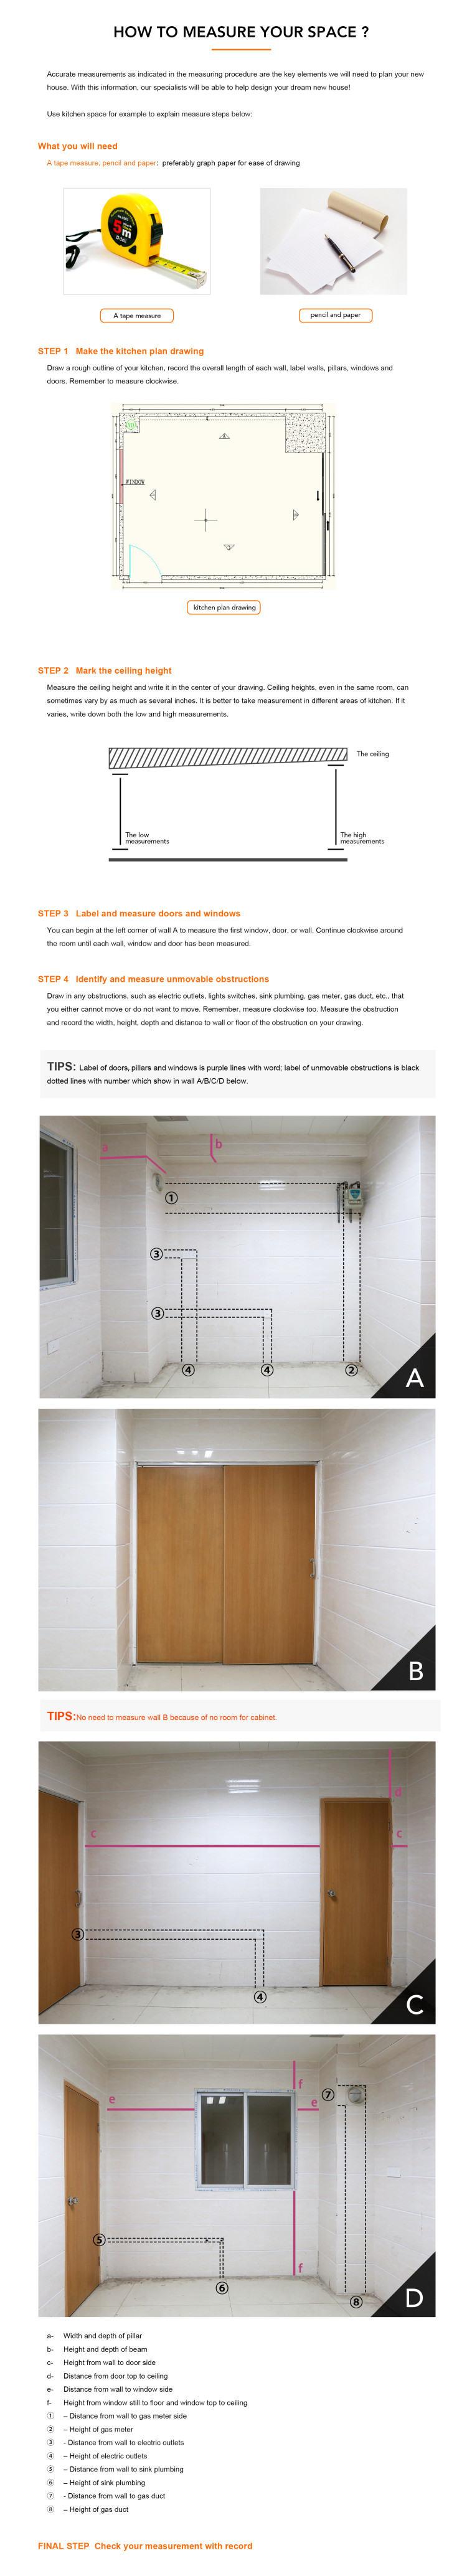 how-to-measure-your-space